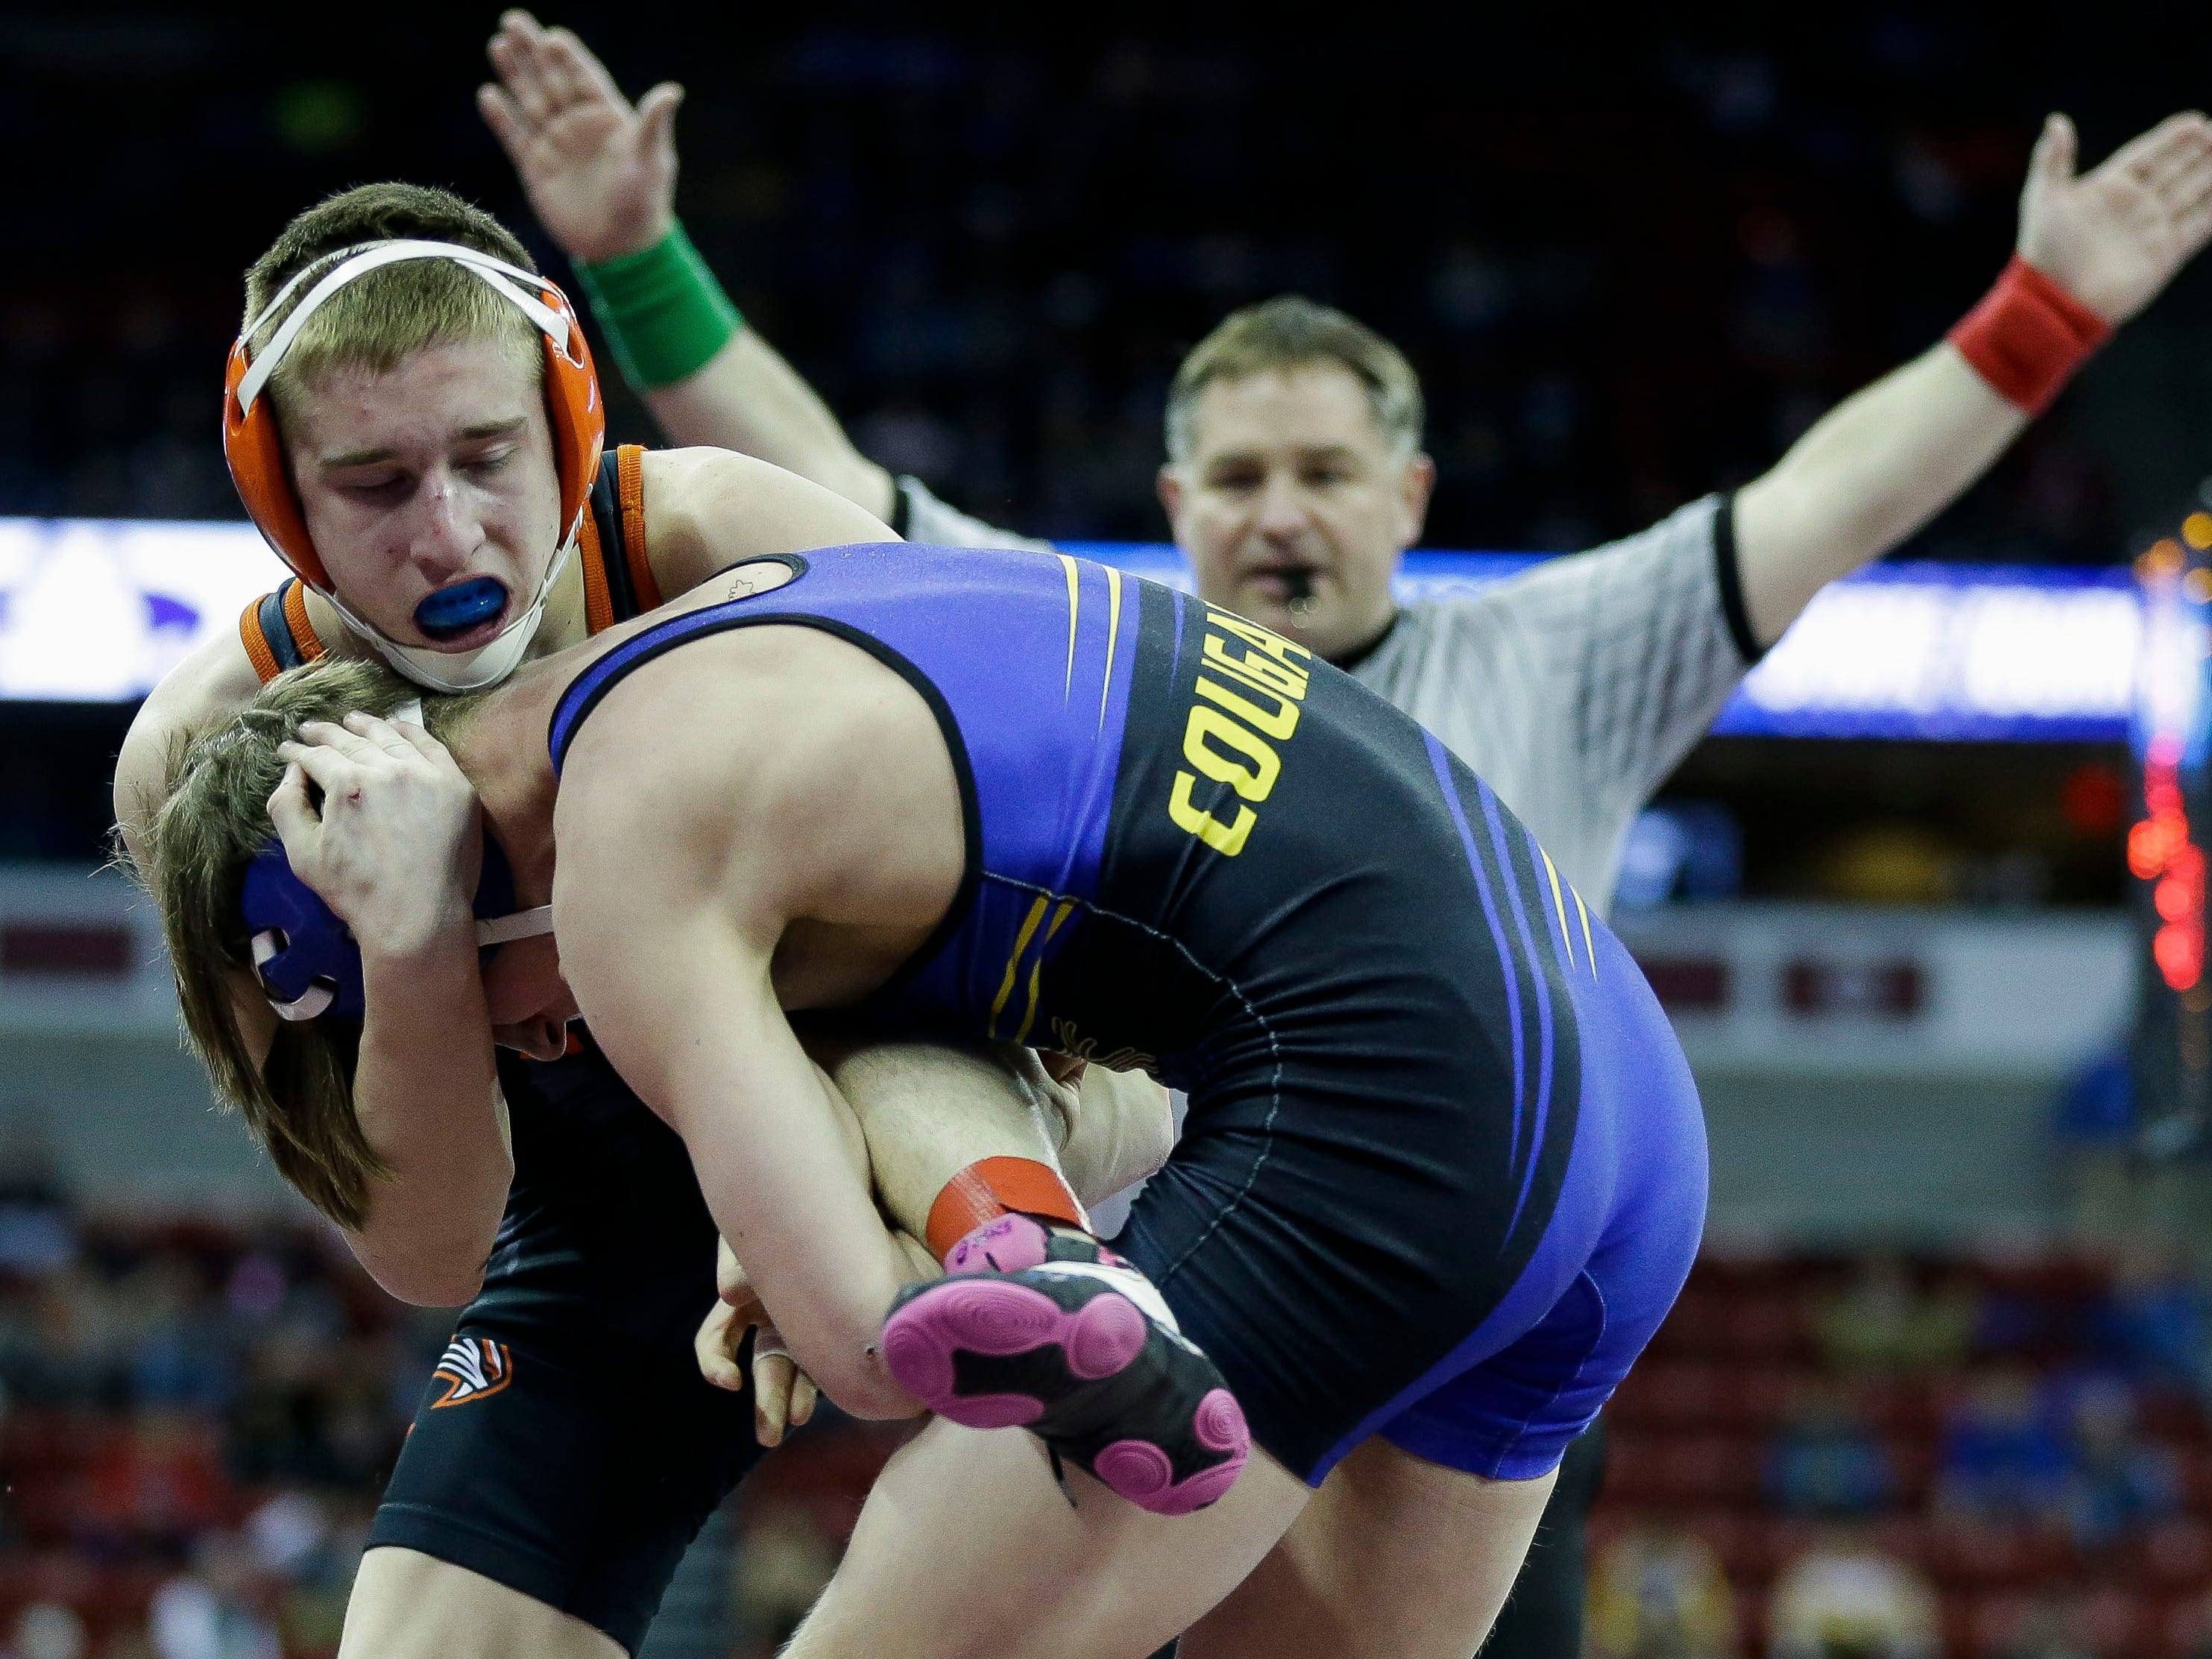 Oconto Falls' Tyler Budz fights to keep his balance against Elkhart Lake-Glenbeulah/Howards Grove's Cody Rebedew in a Division 2 126-pound preliminary match during the WIAA state wrestling tournament on Thursday, February 21, 2019, at the Kohl Center in Madison, Wis.